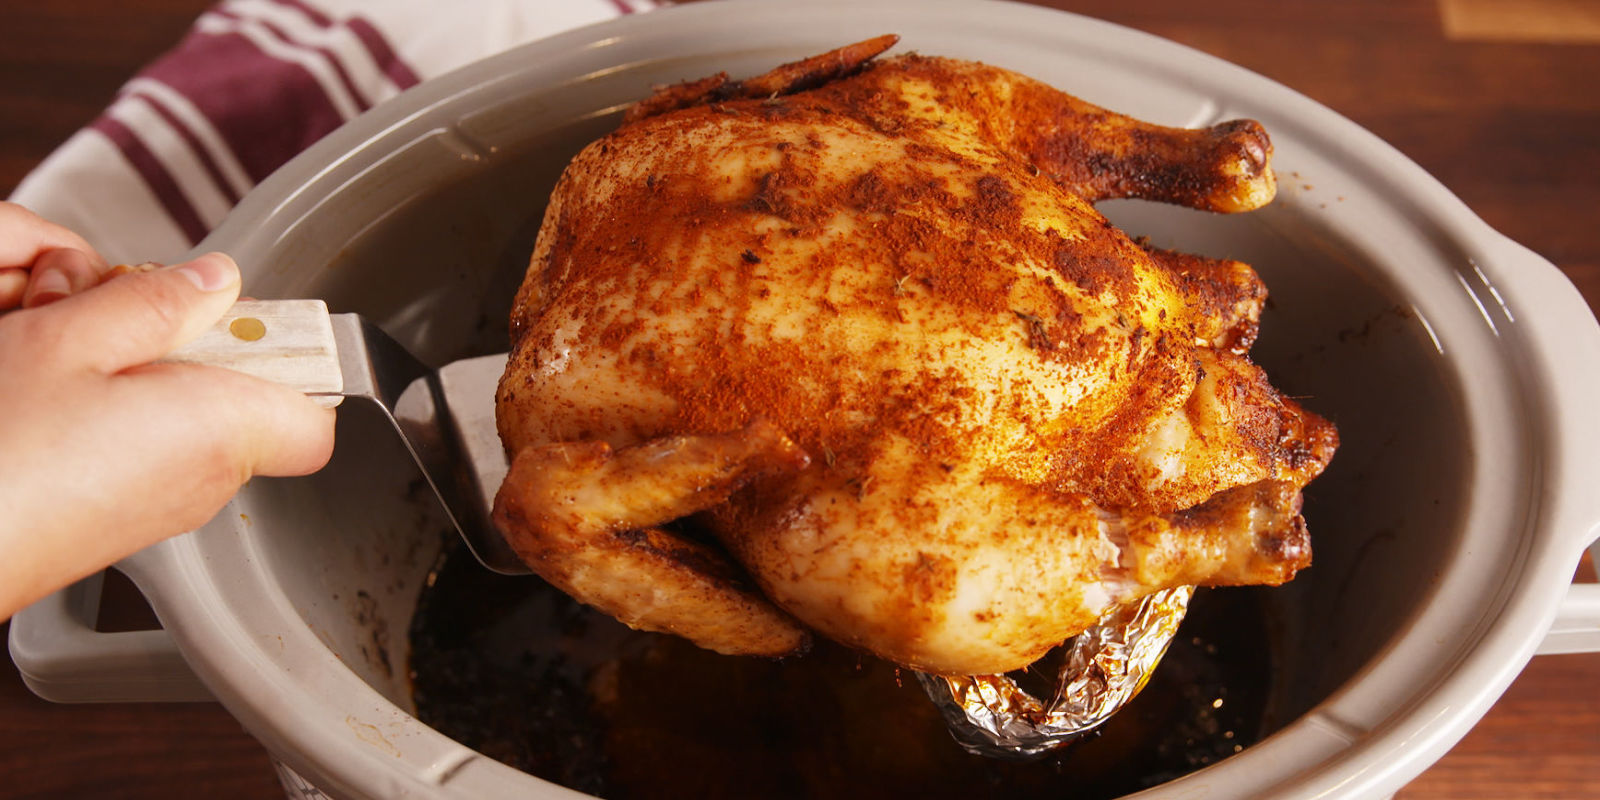 50 Chefs' Favorite Cookbooks. Her Chicken Marbella is one of my go-to recipes for entertaining.